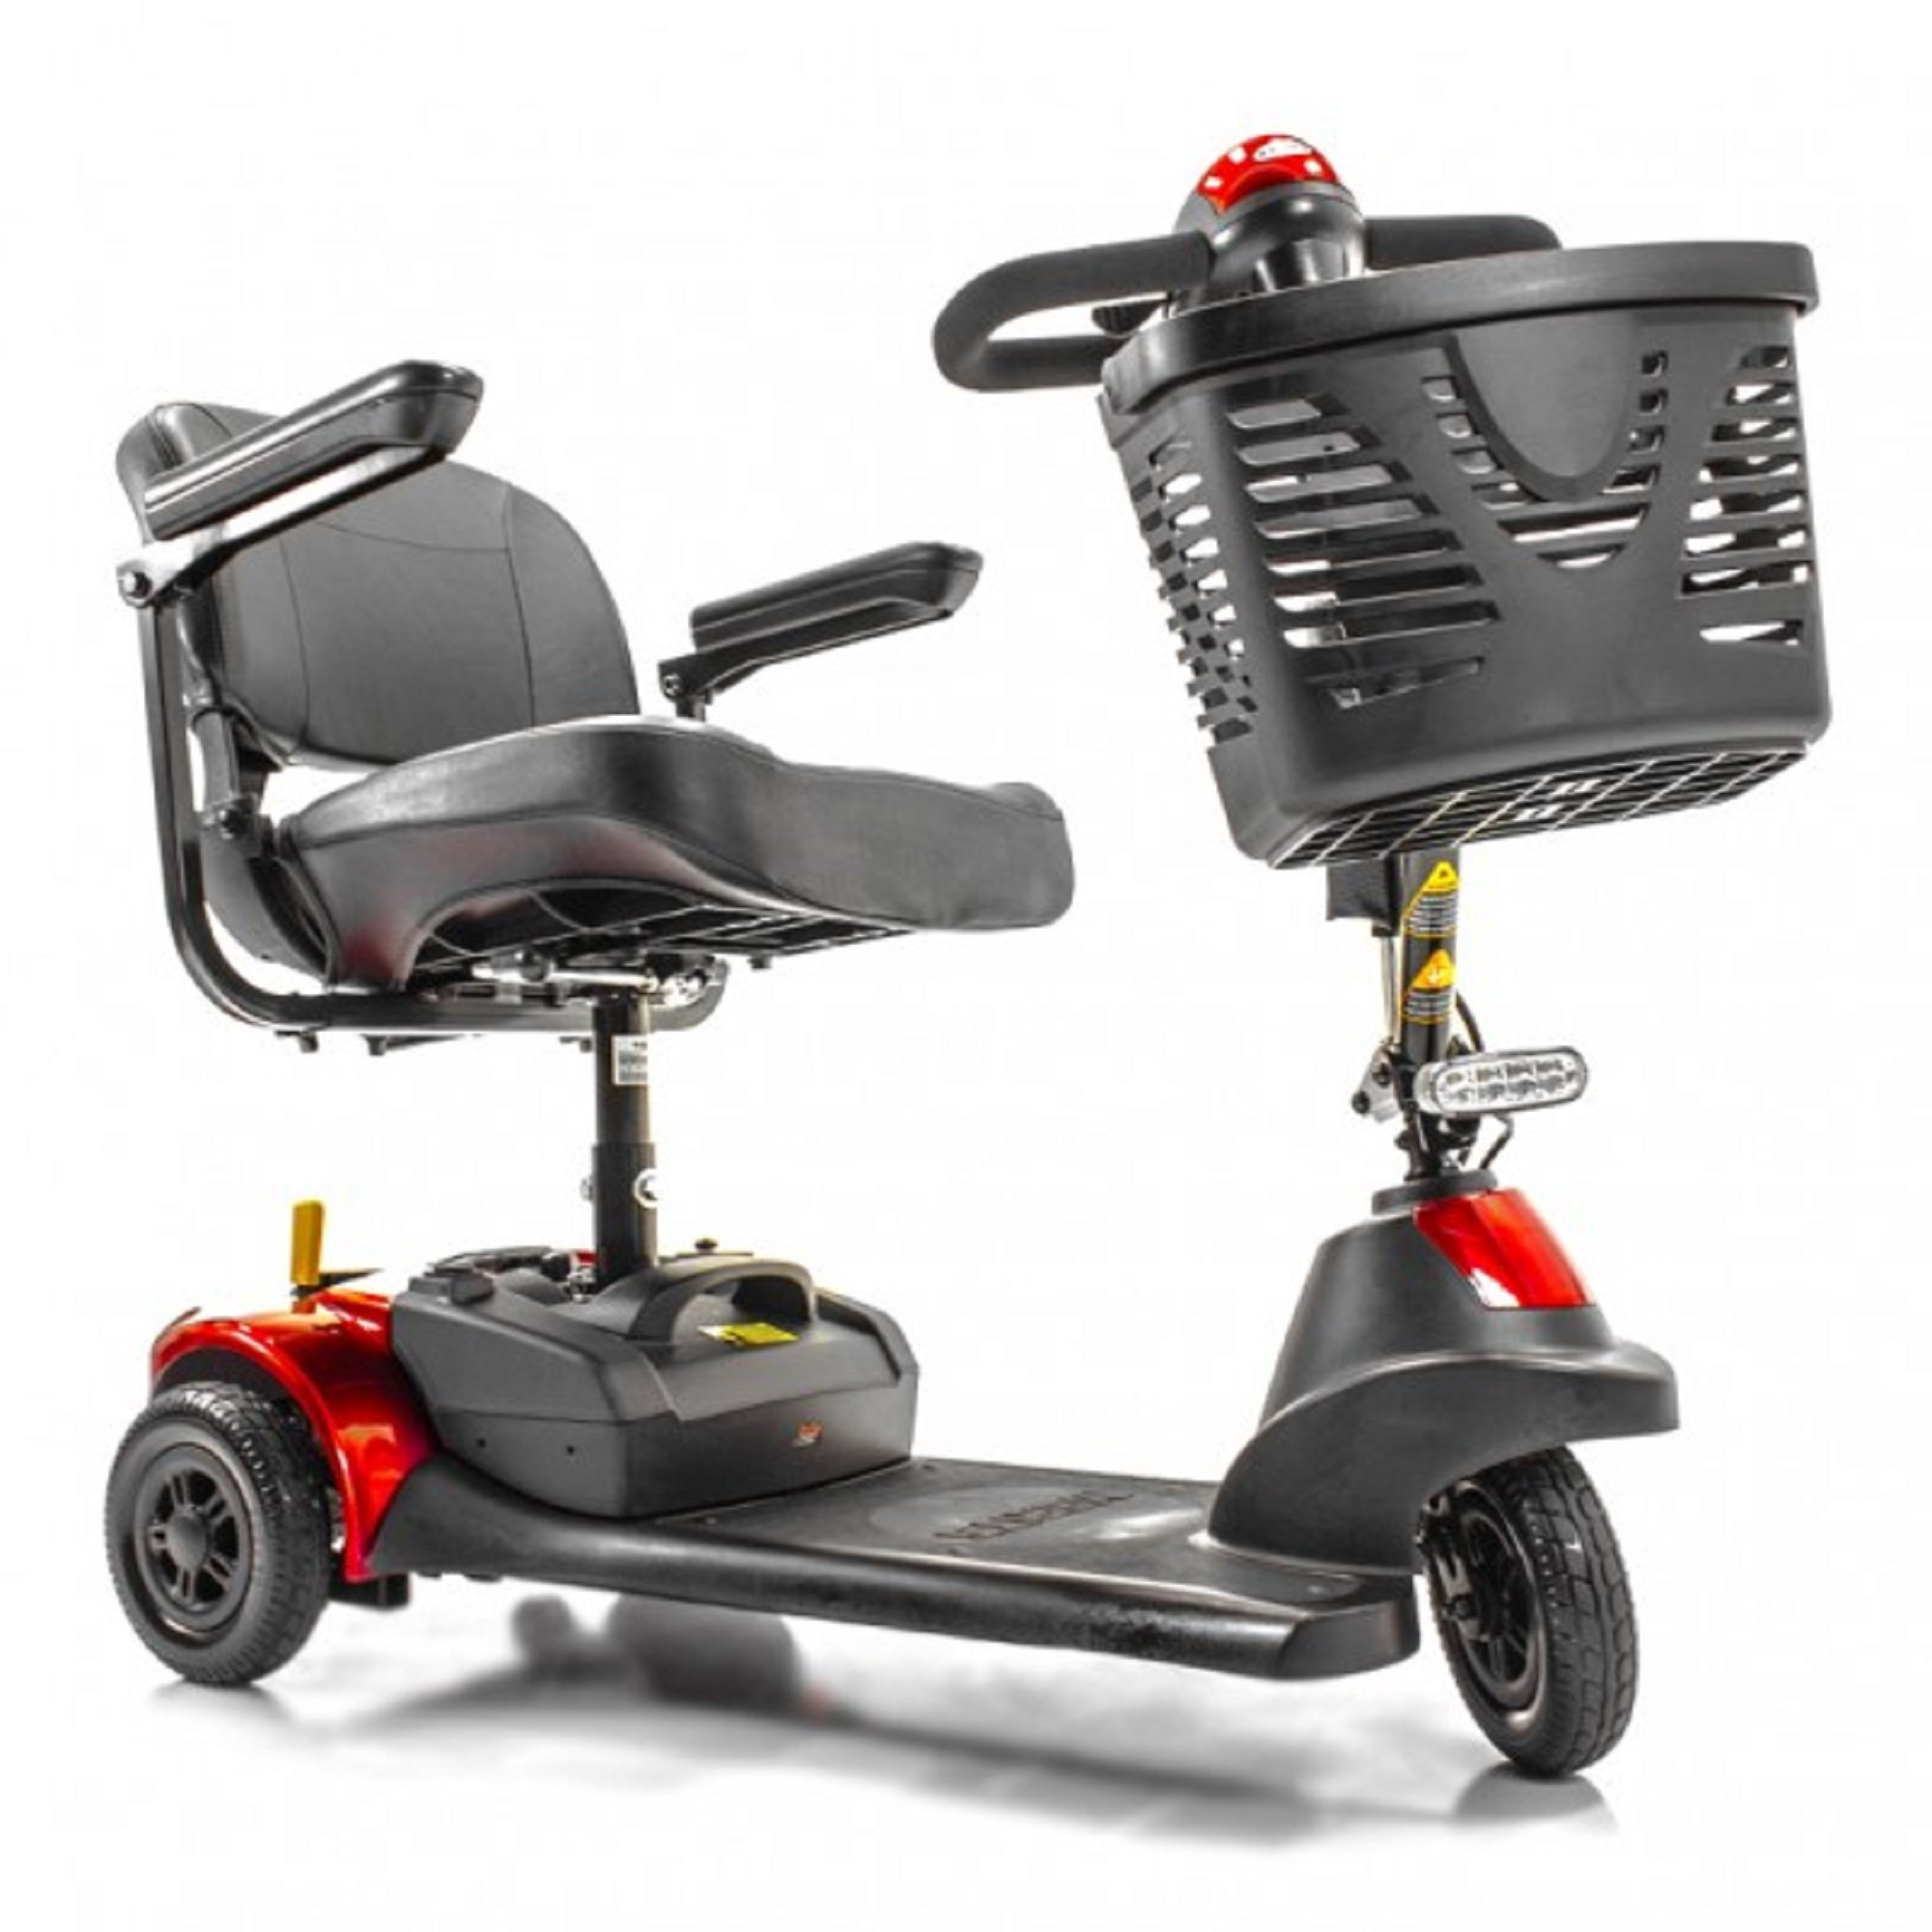 Merits Health Products - Roadster Deluxe - 3-Wheel Scooter - 18''W x 15''D - Red - PHILLIPS POWER PACKAGE TM - TO $500 VALUE by ROADSTER (Image #3)